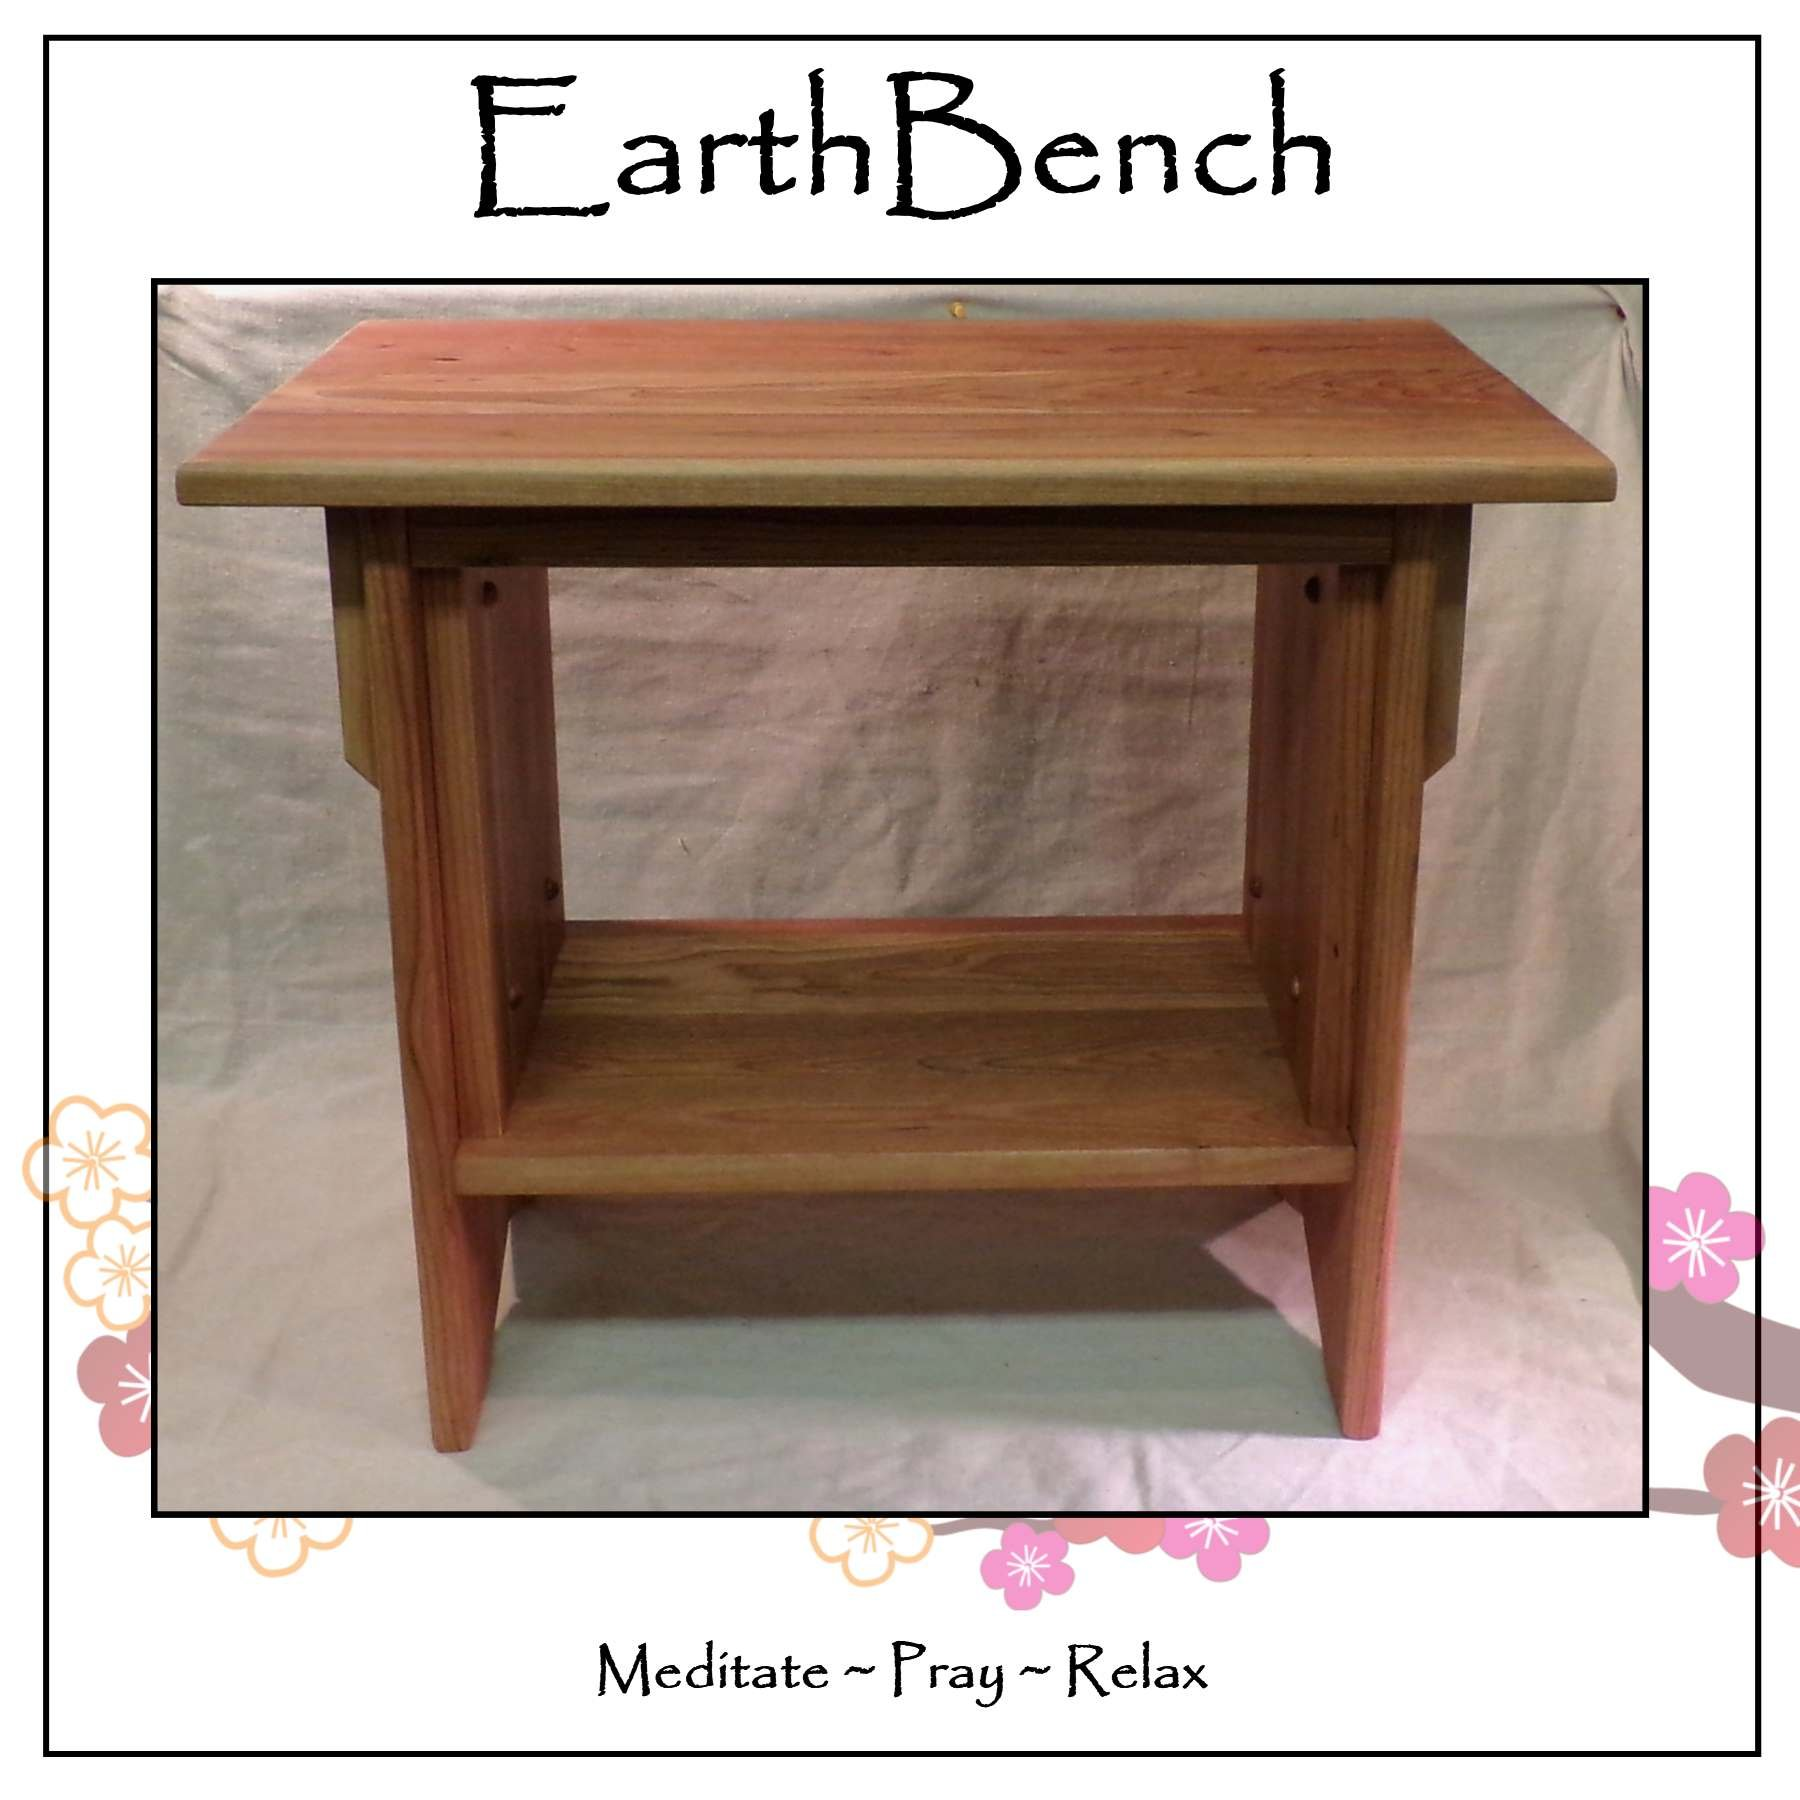 EarthBench Personal 'end-table' Altar - 20'' tall w/ 23-1/2'' by 13'' table top - Solid CHERRY WOOD for Meditation and Prayer.